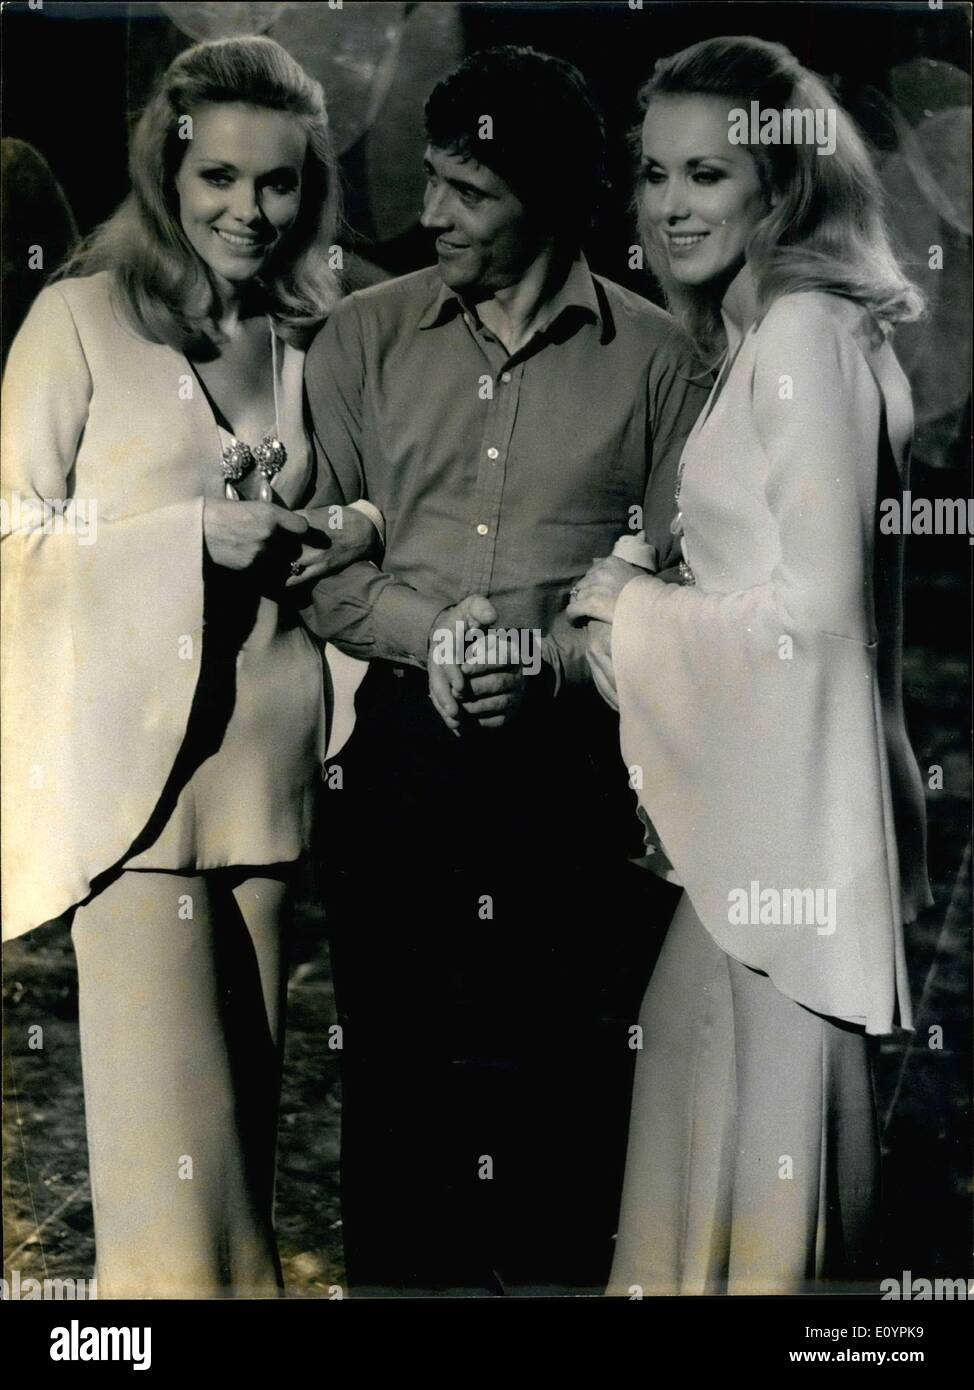 Feb. 18, 1971 - For his next television program, singer Sacha Distel will sing with the charming Lido twins, the Kessler sisters. Distel and the Kessler sisters are pictured while recording the program in Office de Radiodiffusion-T?l?vision Fran?aise studios. - Stock Image